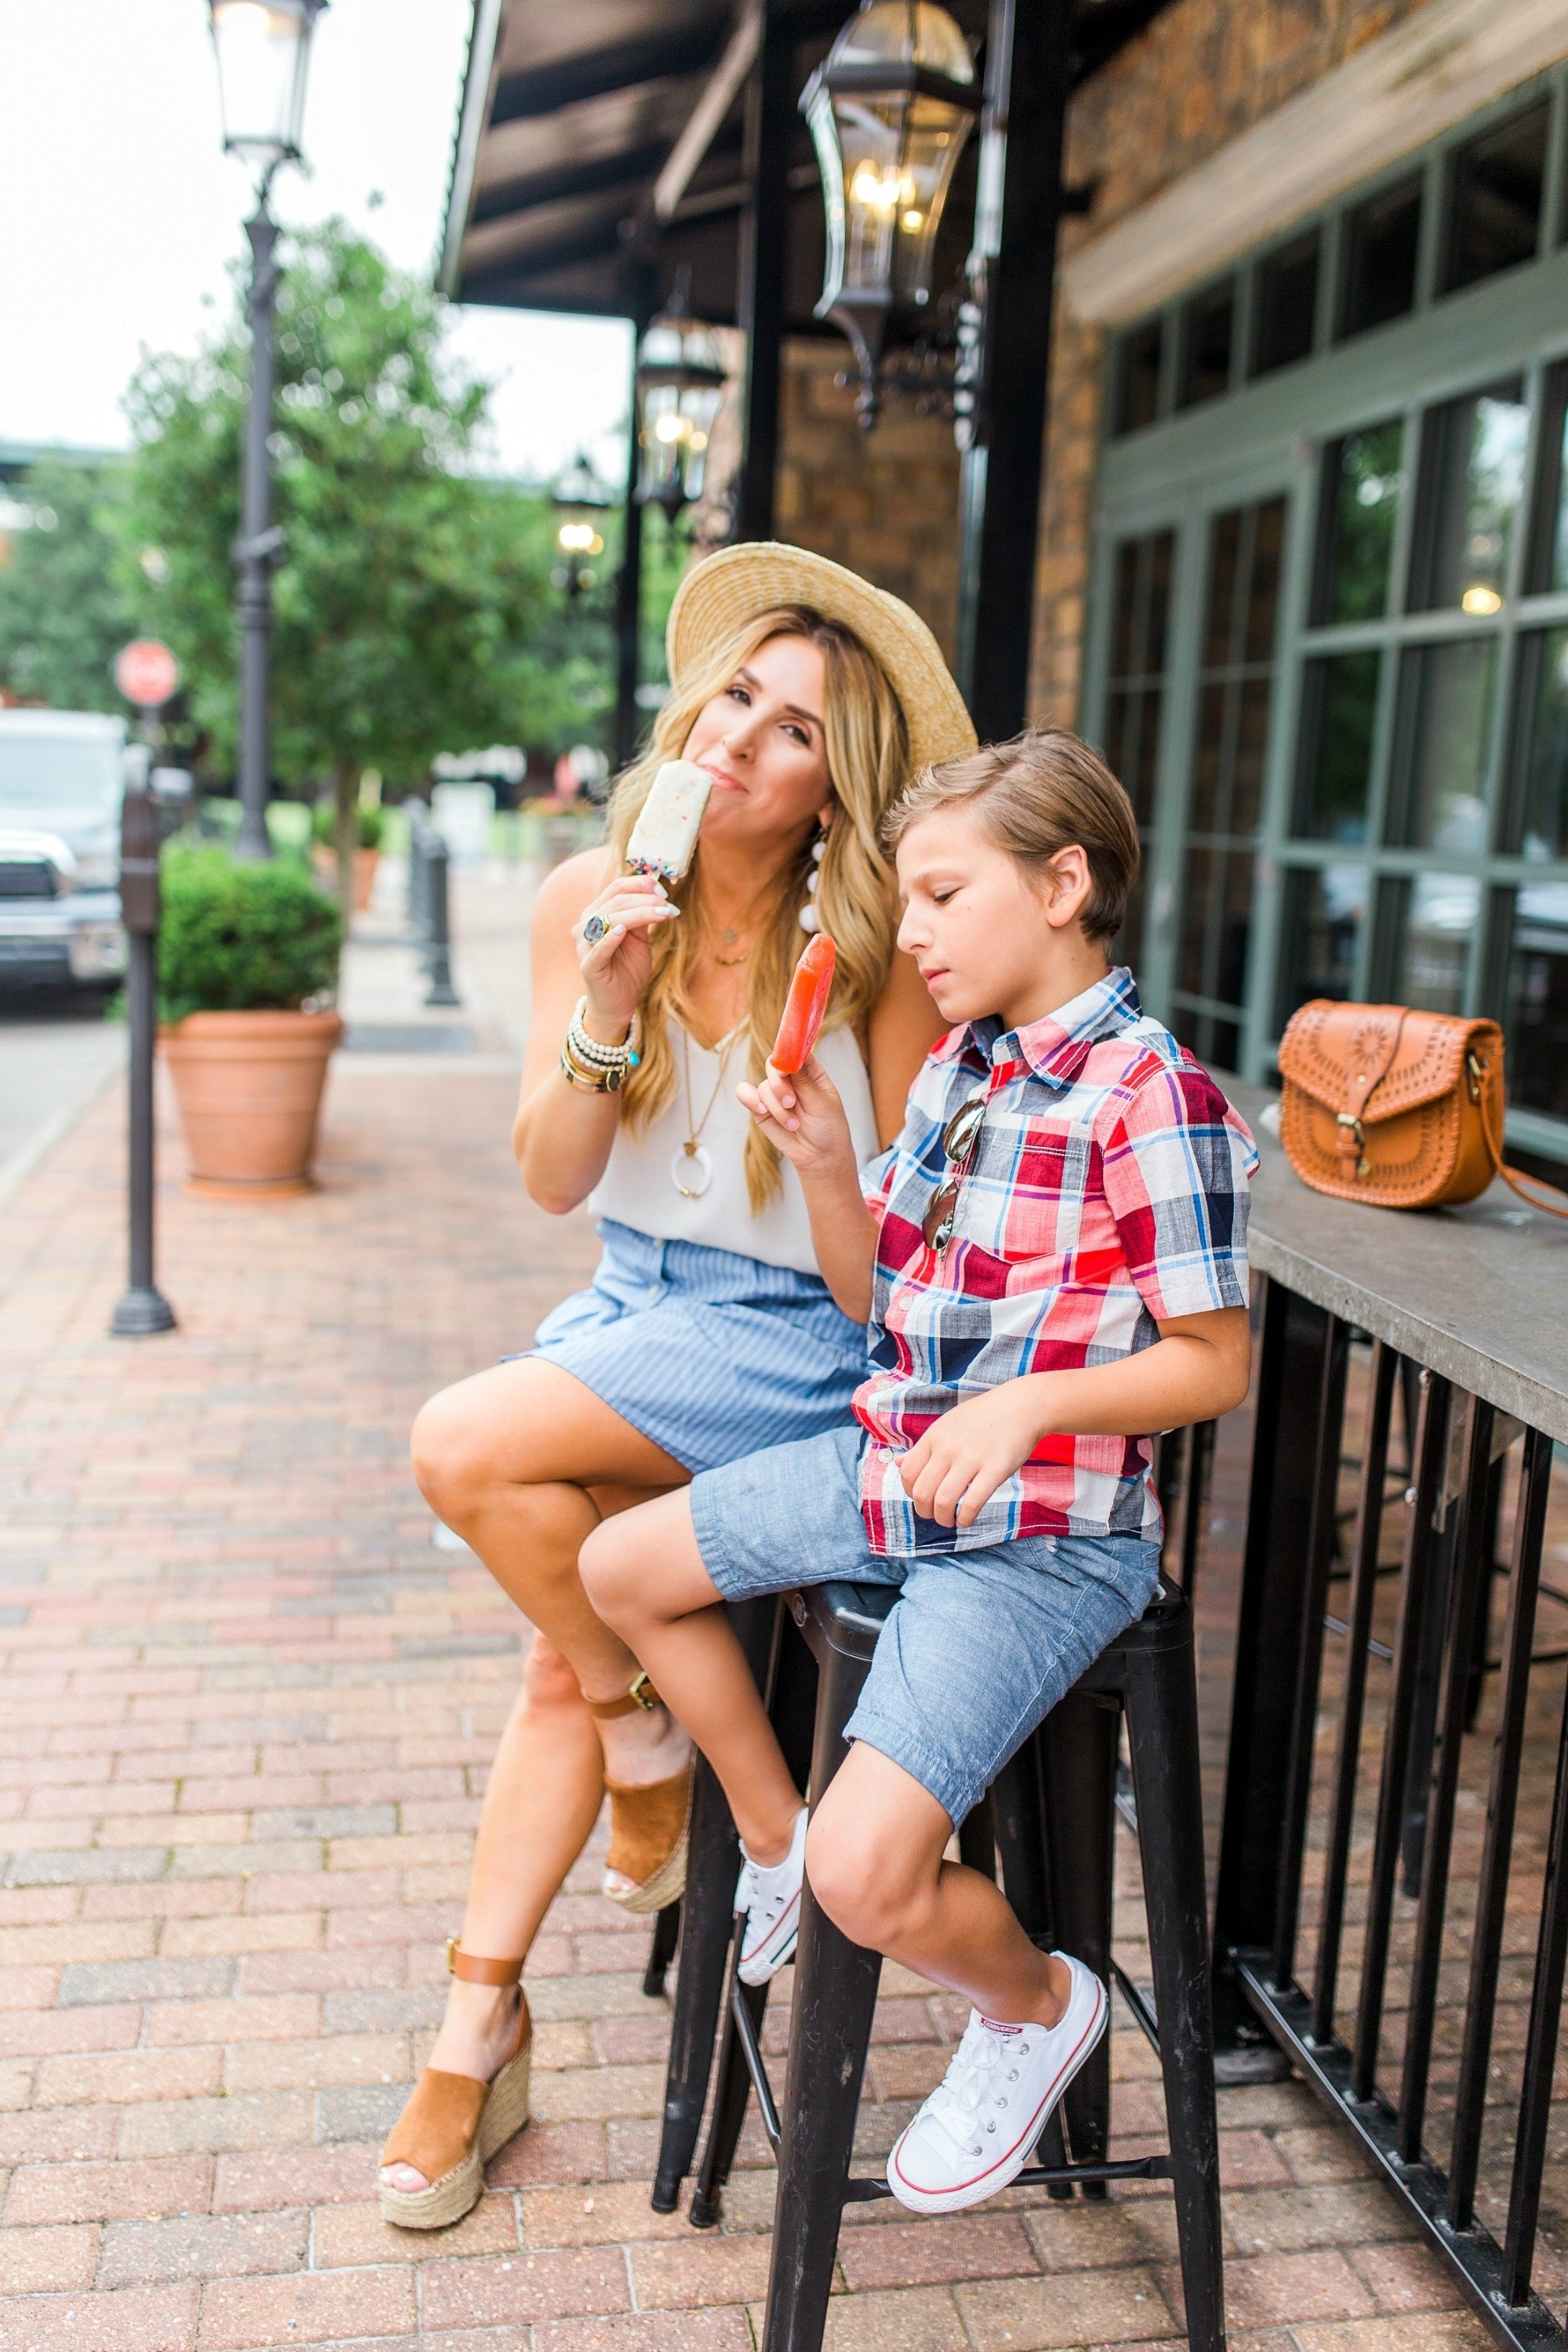 10 Wonderful Mother And Son Photo Ideas mom son date night and bonding time january hart blog 1 2020